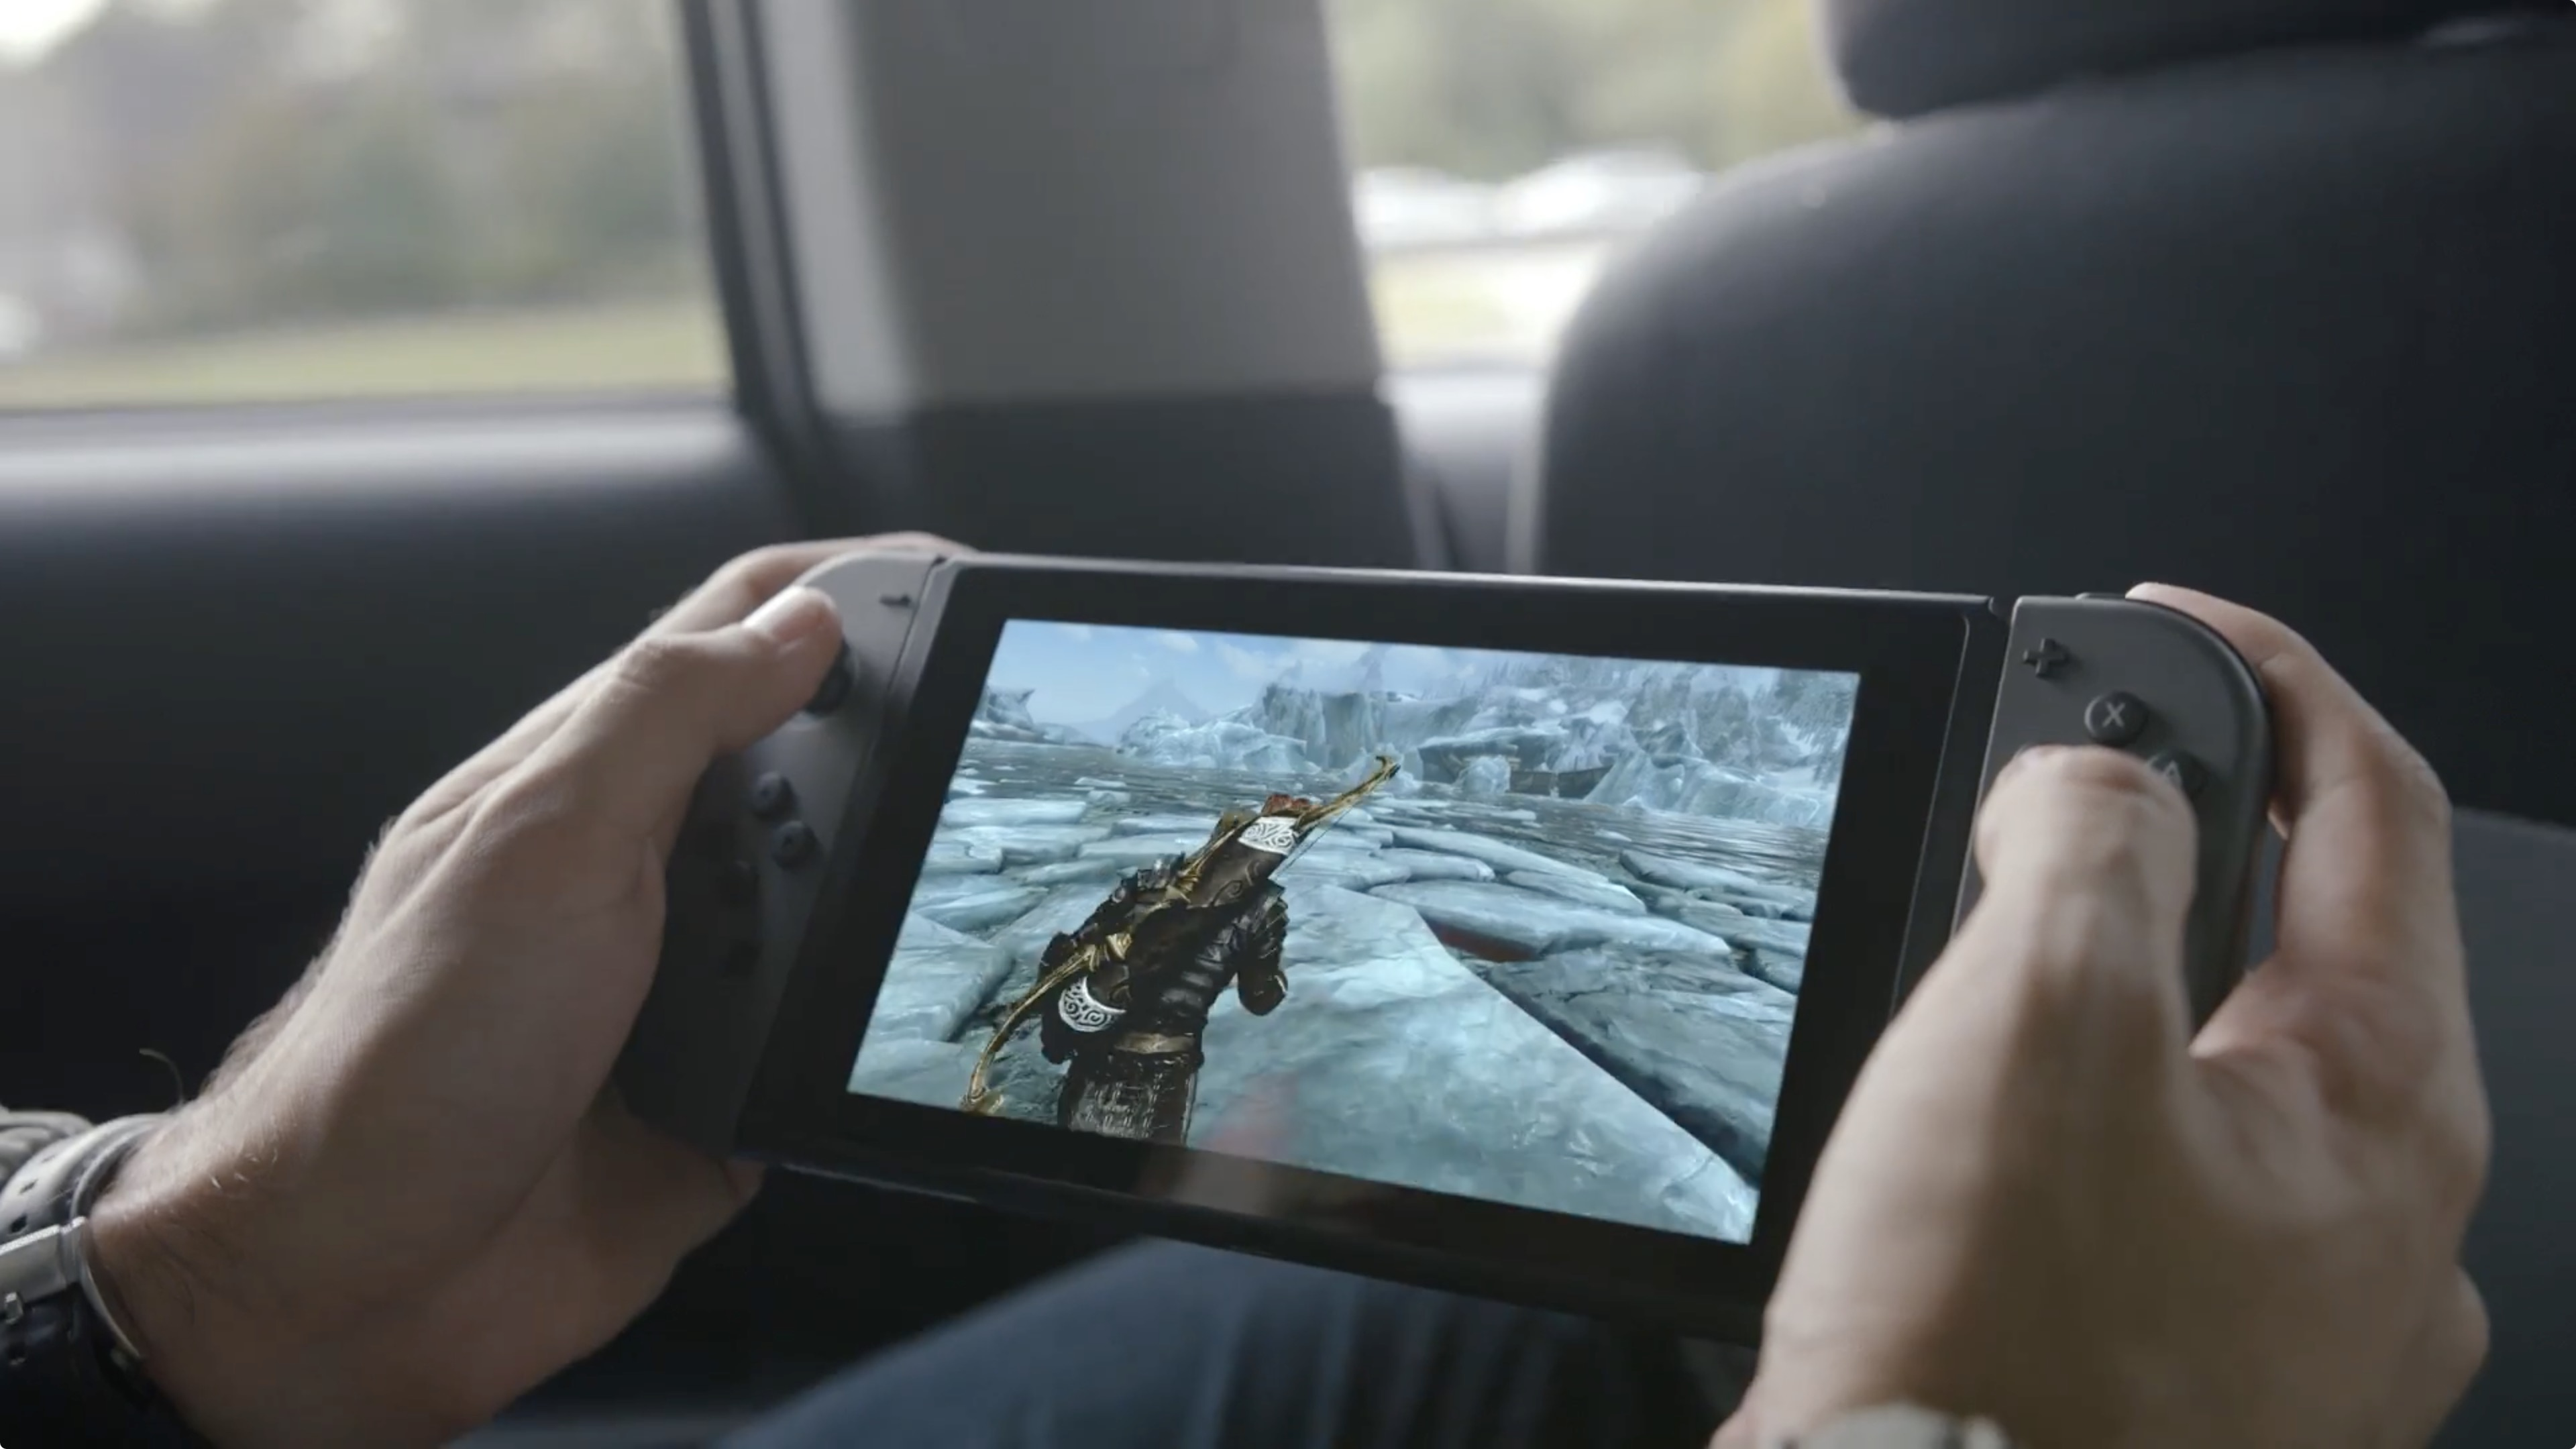 The questions Nintendo needs to answer about the Switch